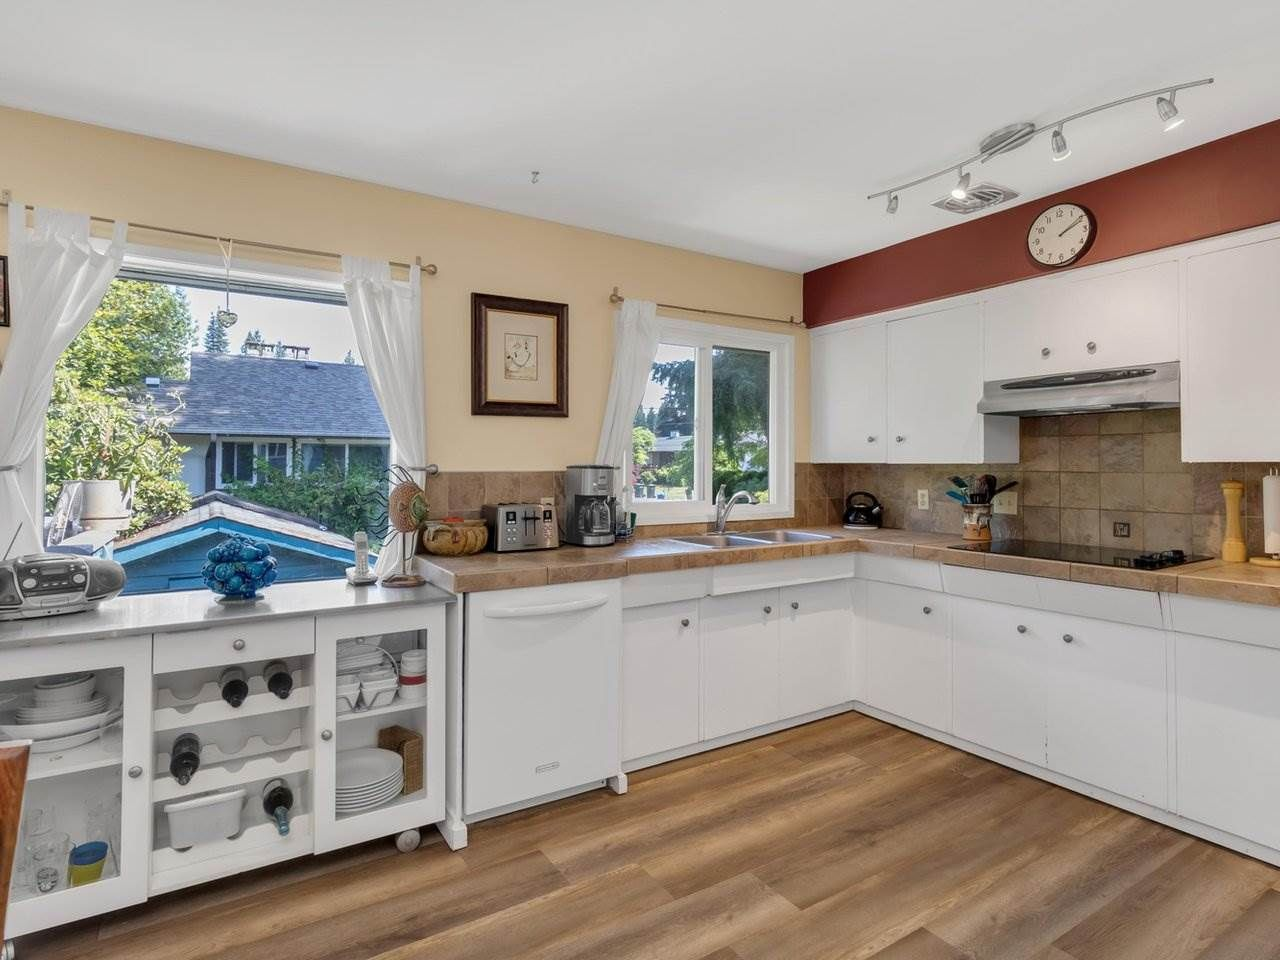 Photo 6: Photos: 943 GATENSBURY Street in Coquitlam: Harbour Chines House for sale : MLS®# R2499202